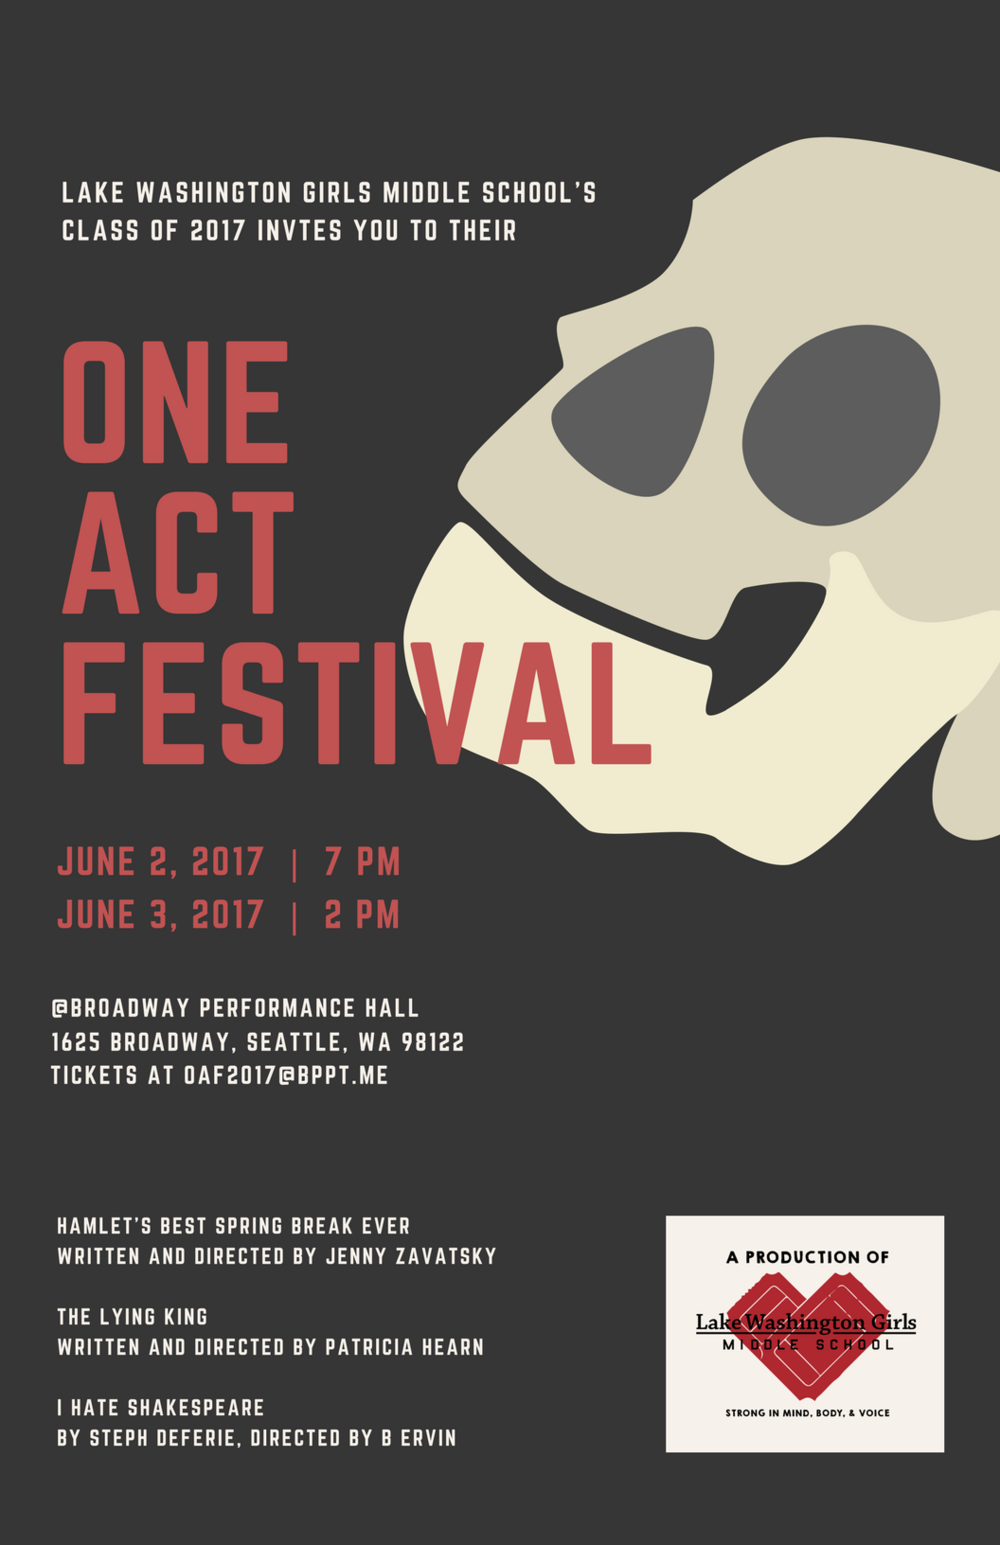 1617 LWGMS One Act Festival